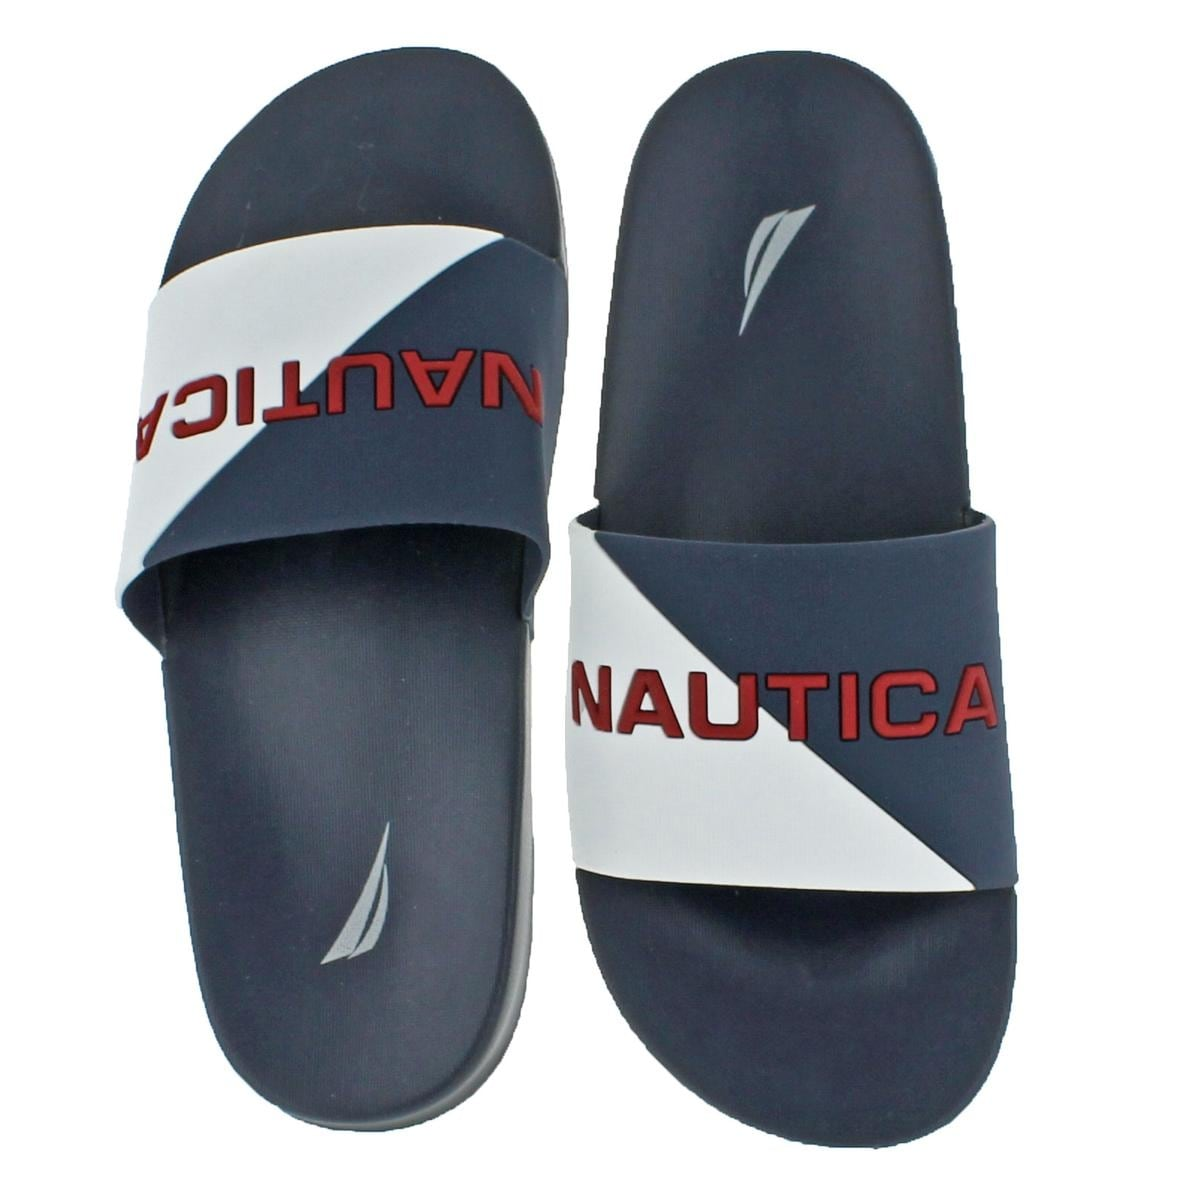 1cbc8df51fe Shop Nautica Mens Stono Slide Sandals Summer Retro - Free Shipping On  Orders Over  45 - Overstock - 21724386